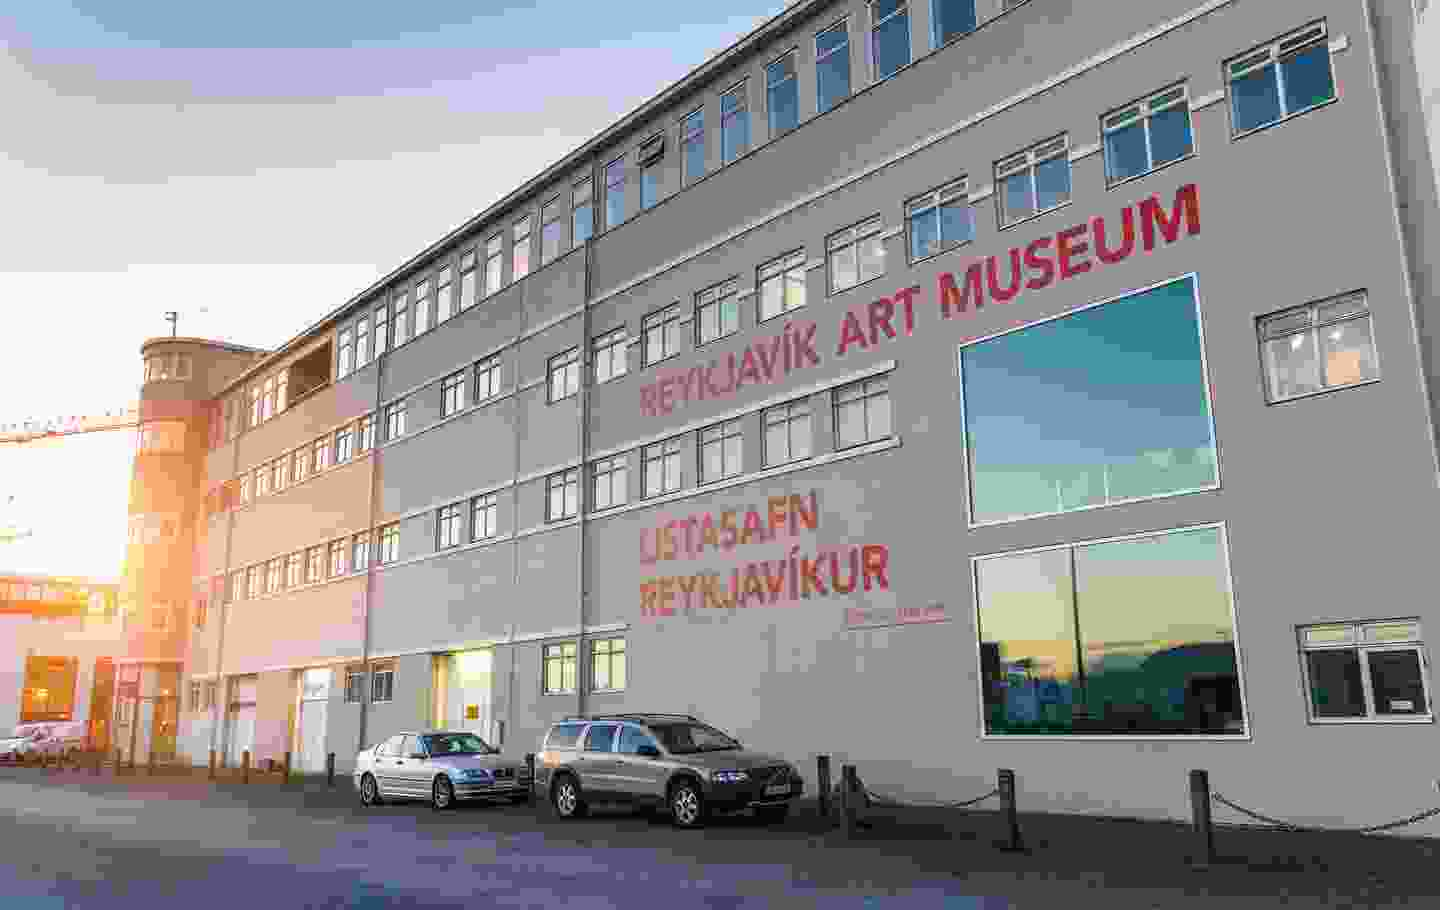 The exterior of Reykjavik Art Museum is just as stylish as the inside (Shutterstock)